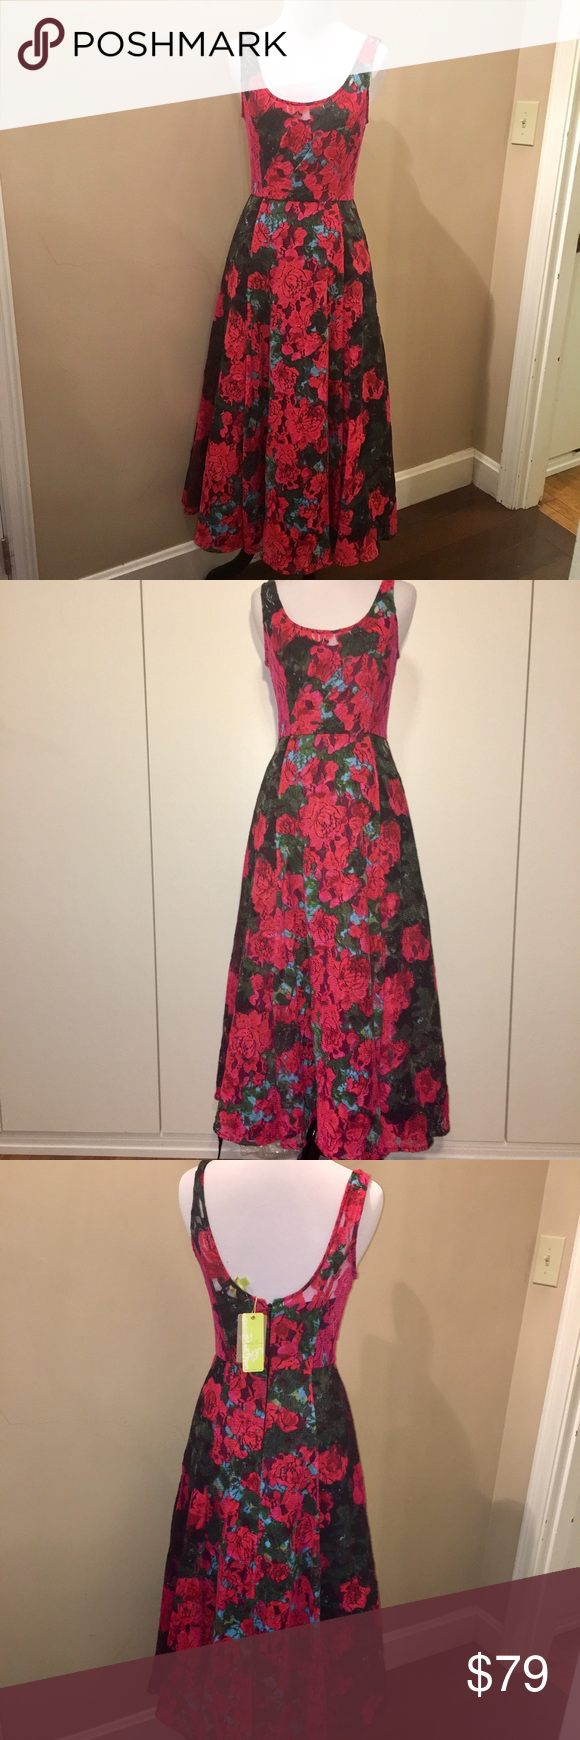 Lace flowery dress, Tracy Reese for Anthropology Anthropology Tracy Reese dress. This is a gorgeous dress, wish I could fit it . Many layers at the skirt part gives it a romantic look. Size 2 Anthropologie Dresses Maxi